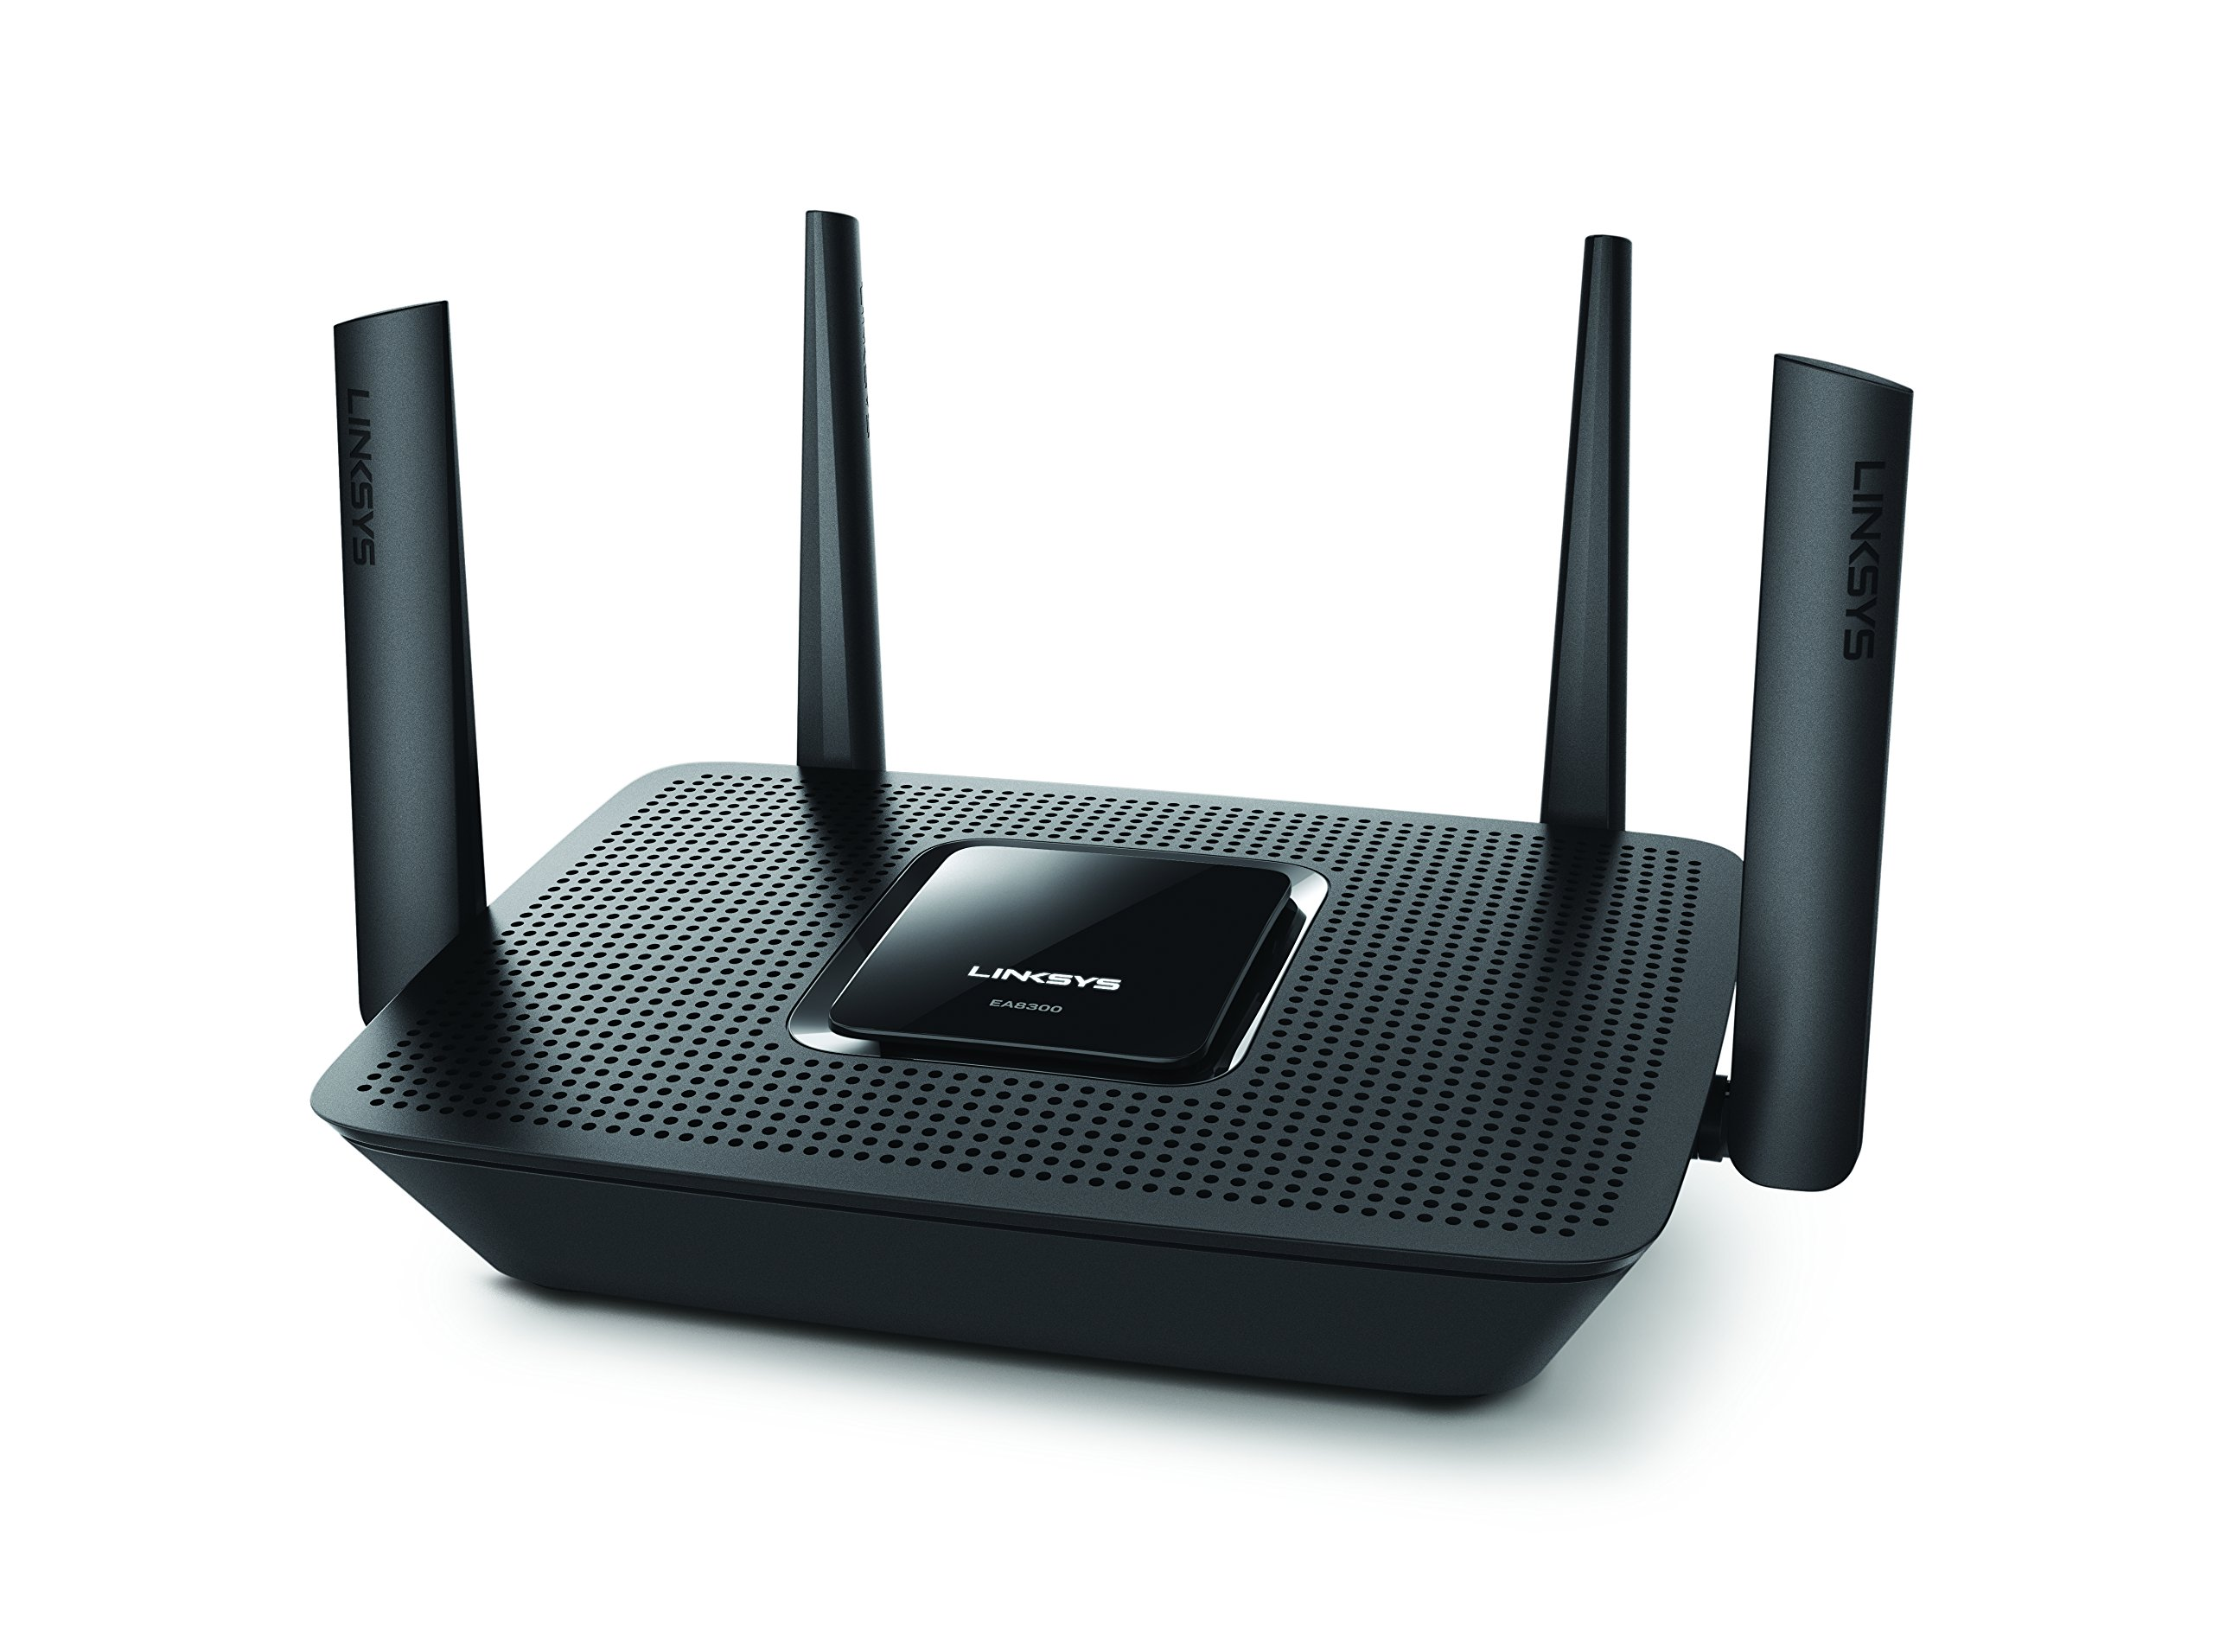 Linksys Max-Stream AC2200 MU-MIMO Tri-band Wireless Router, Works with Amazon Alexa (EA8300) by Linksys